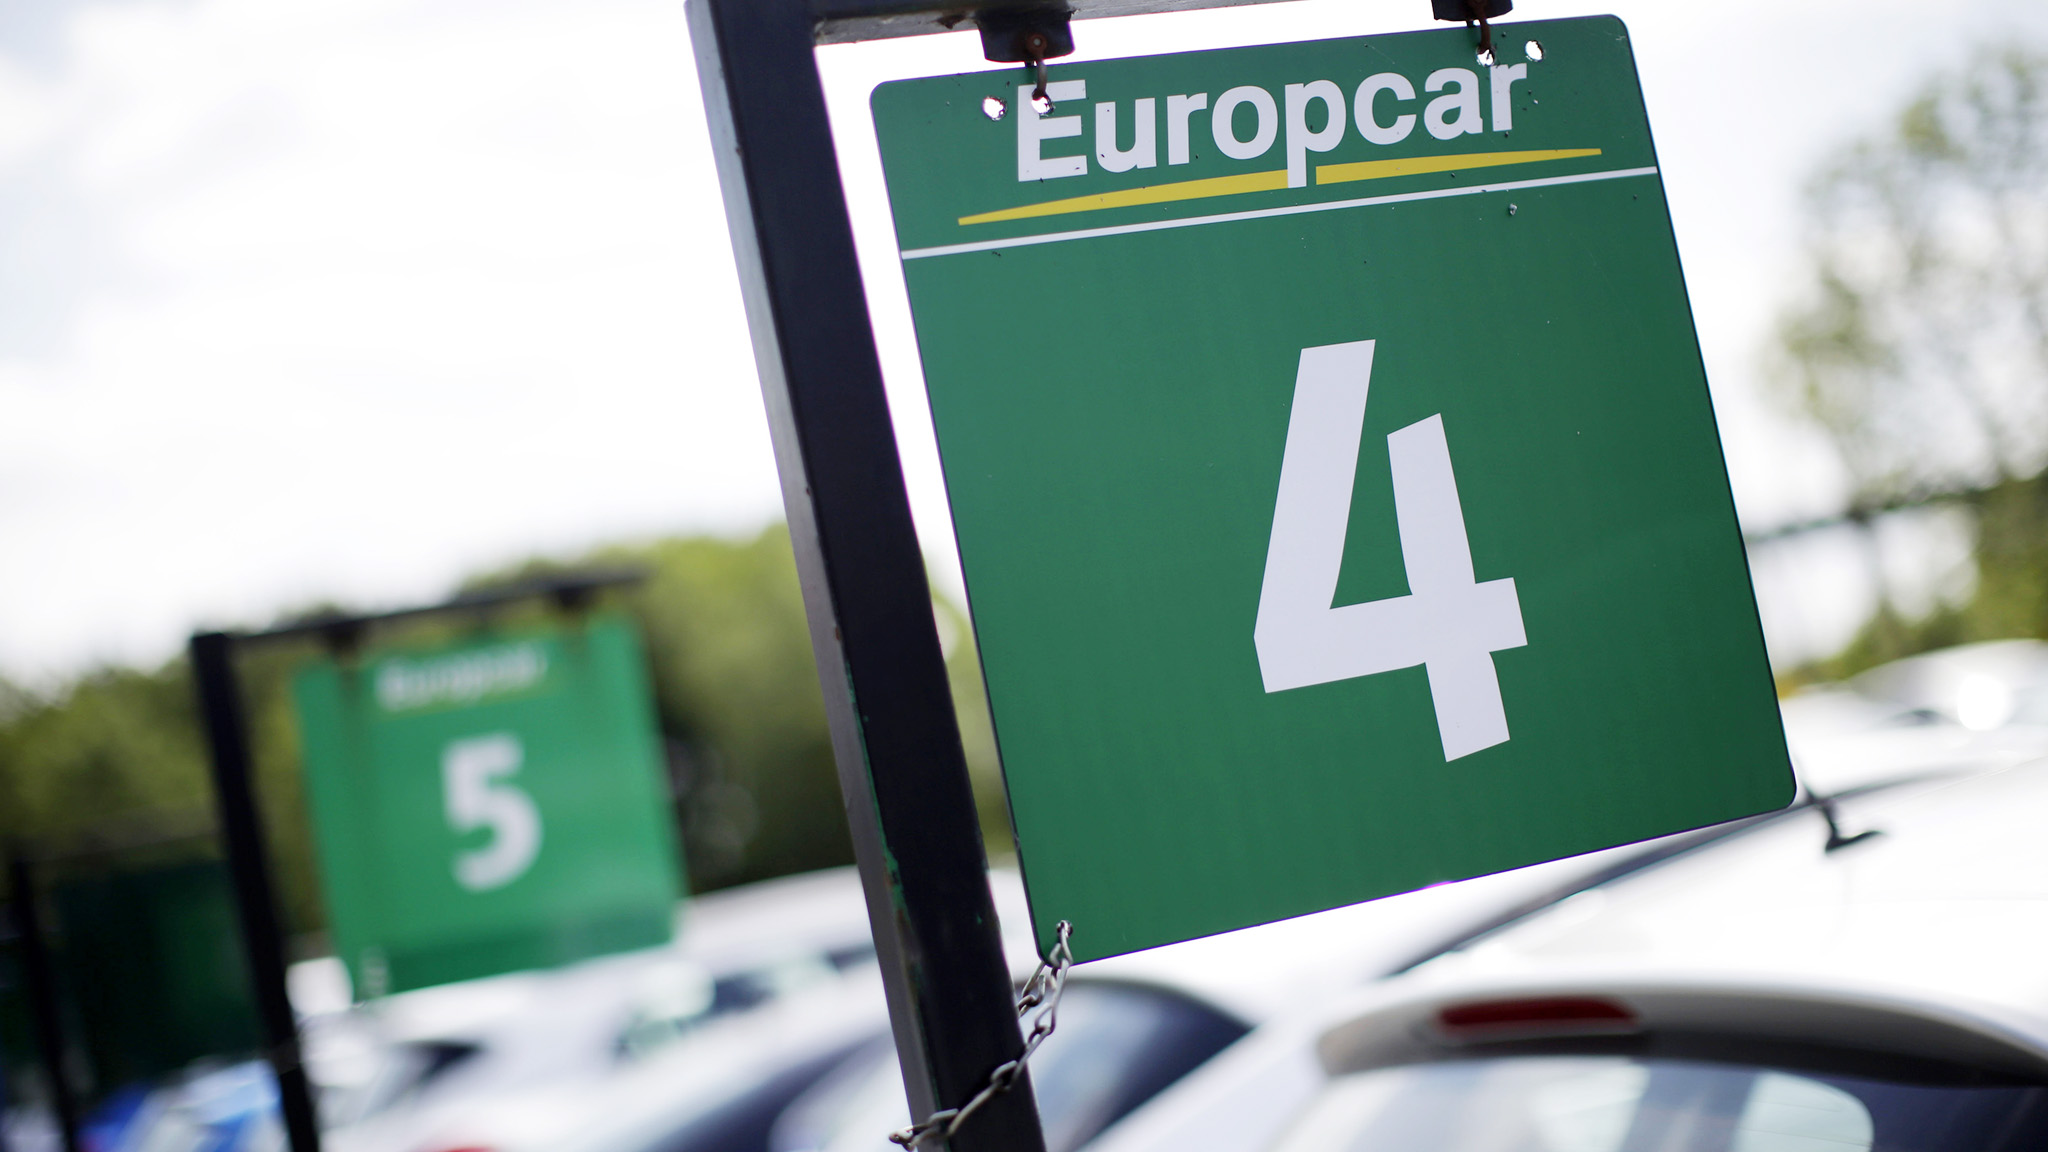 Europcar Expands Holiday Rental With 550m Goldcar Deal Financial